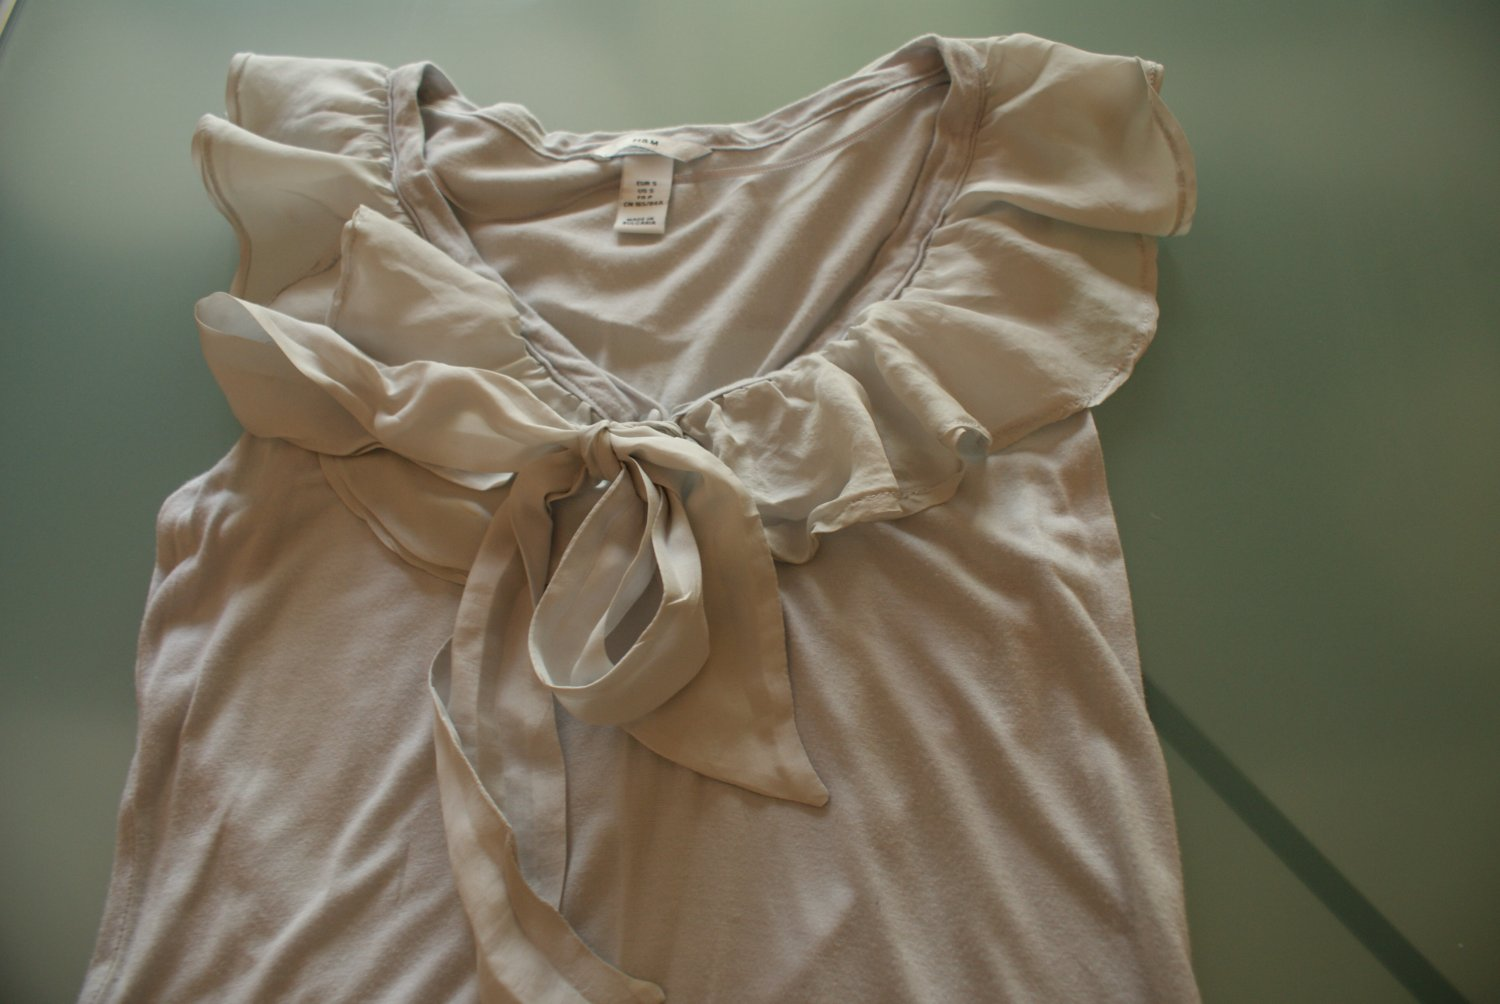 H&M Light Gray (Silver) Top, Size S